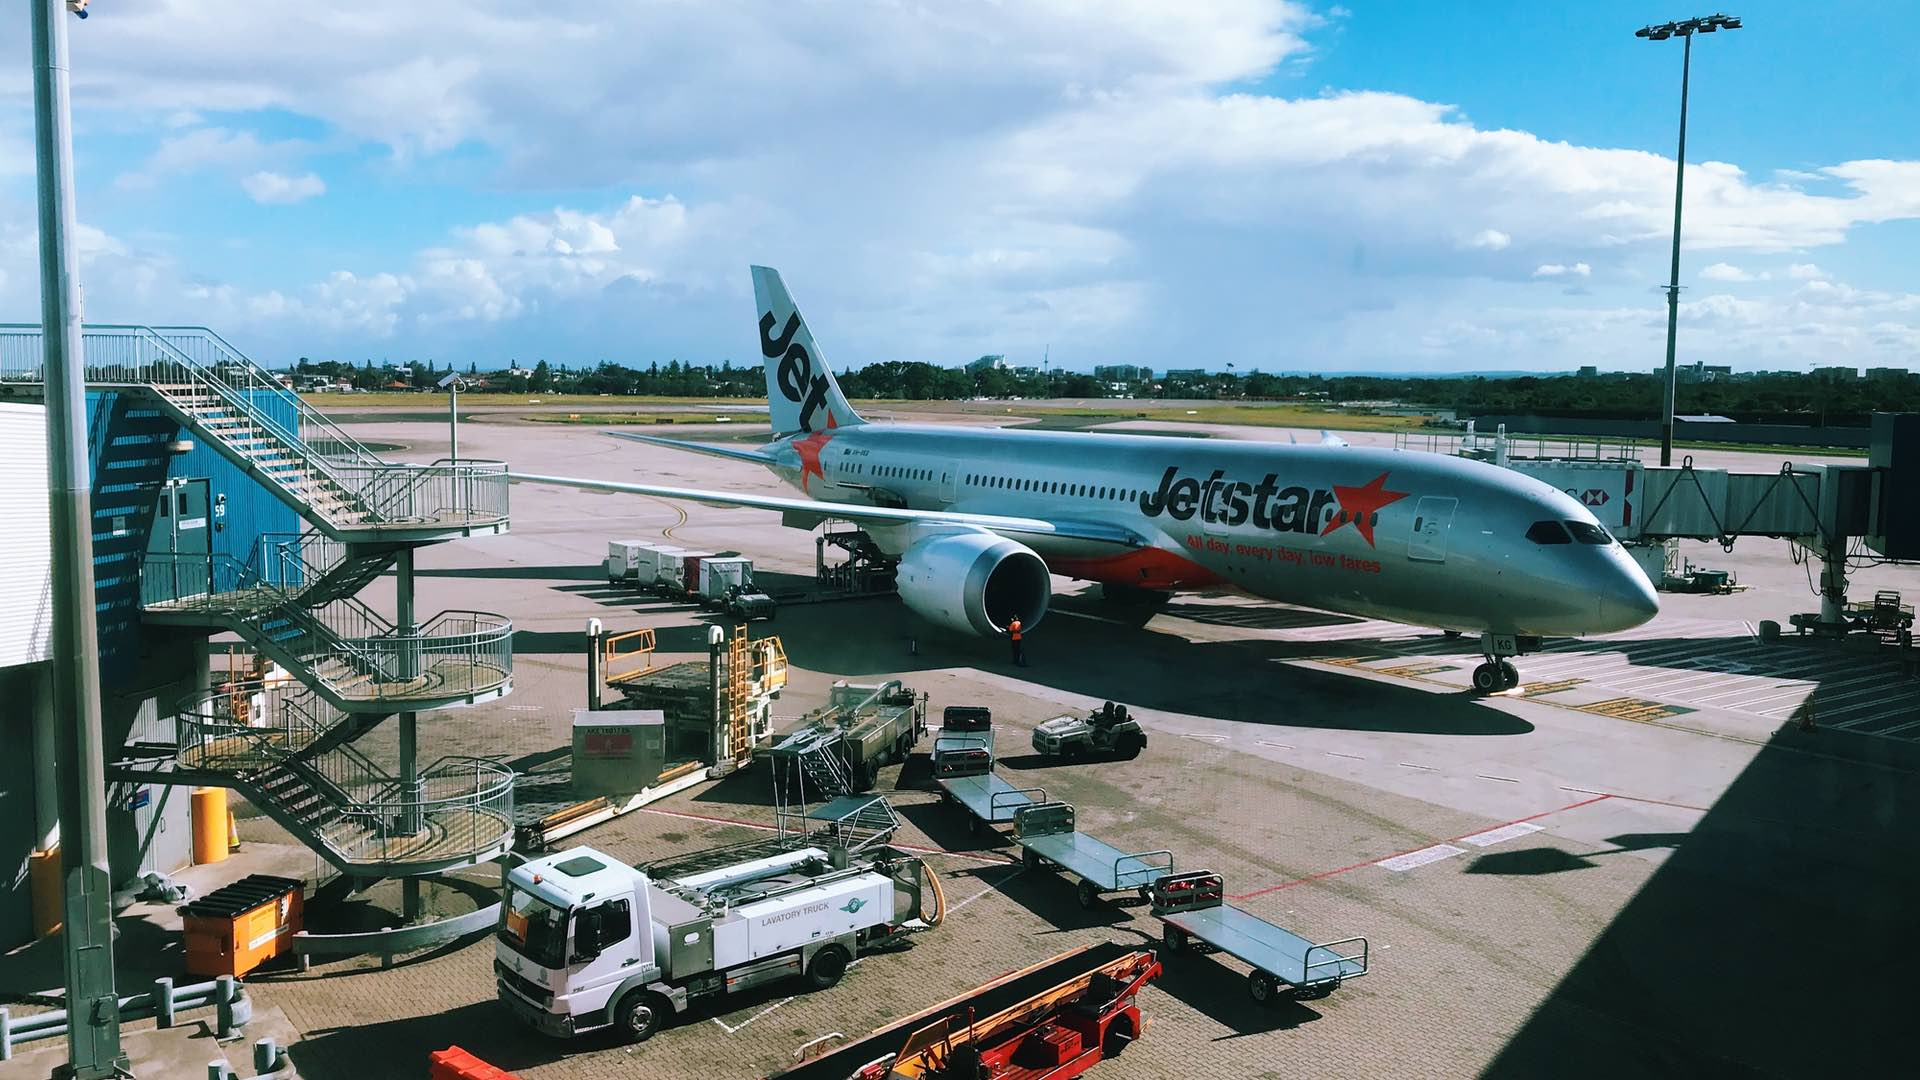 Jetstar Is Launching a Big Sale on Domestic and Trans-Tasman Flights with Fares From $33